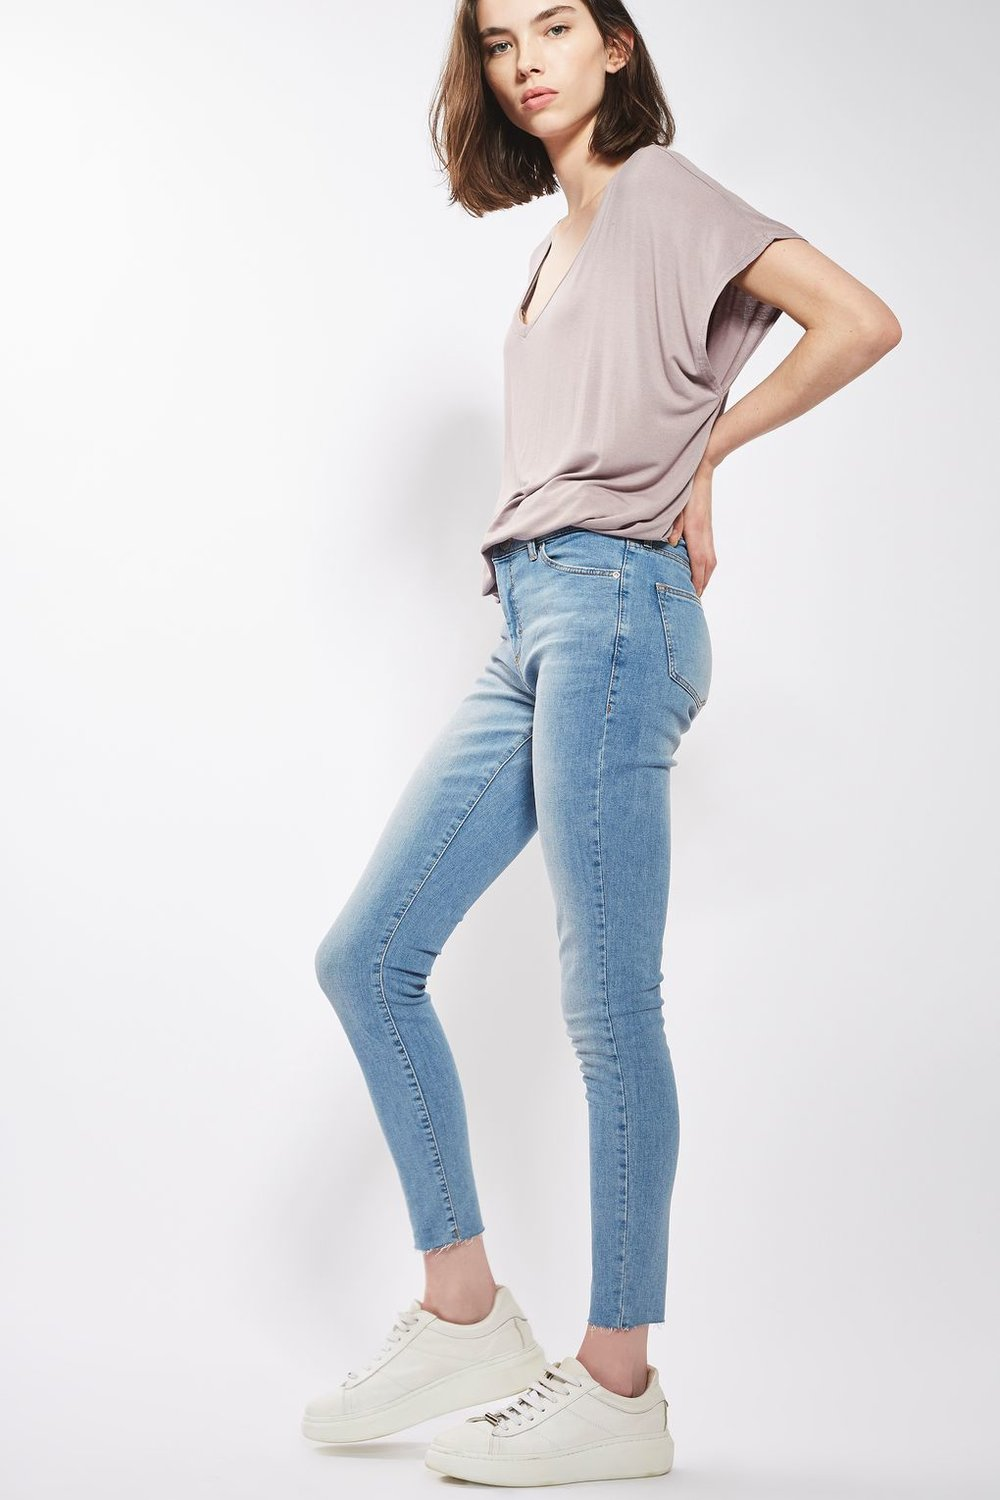 Topshop Light Blue Jeans